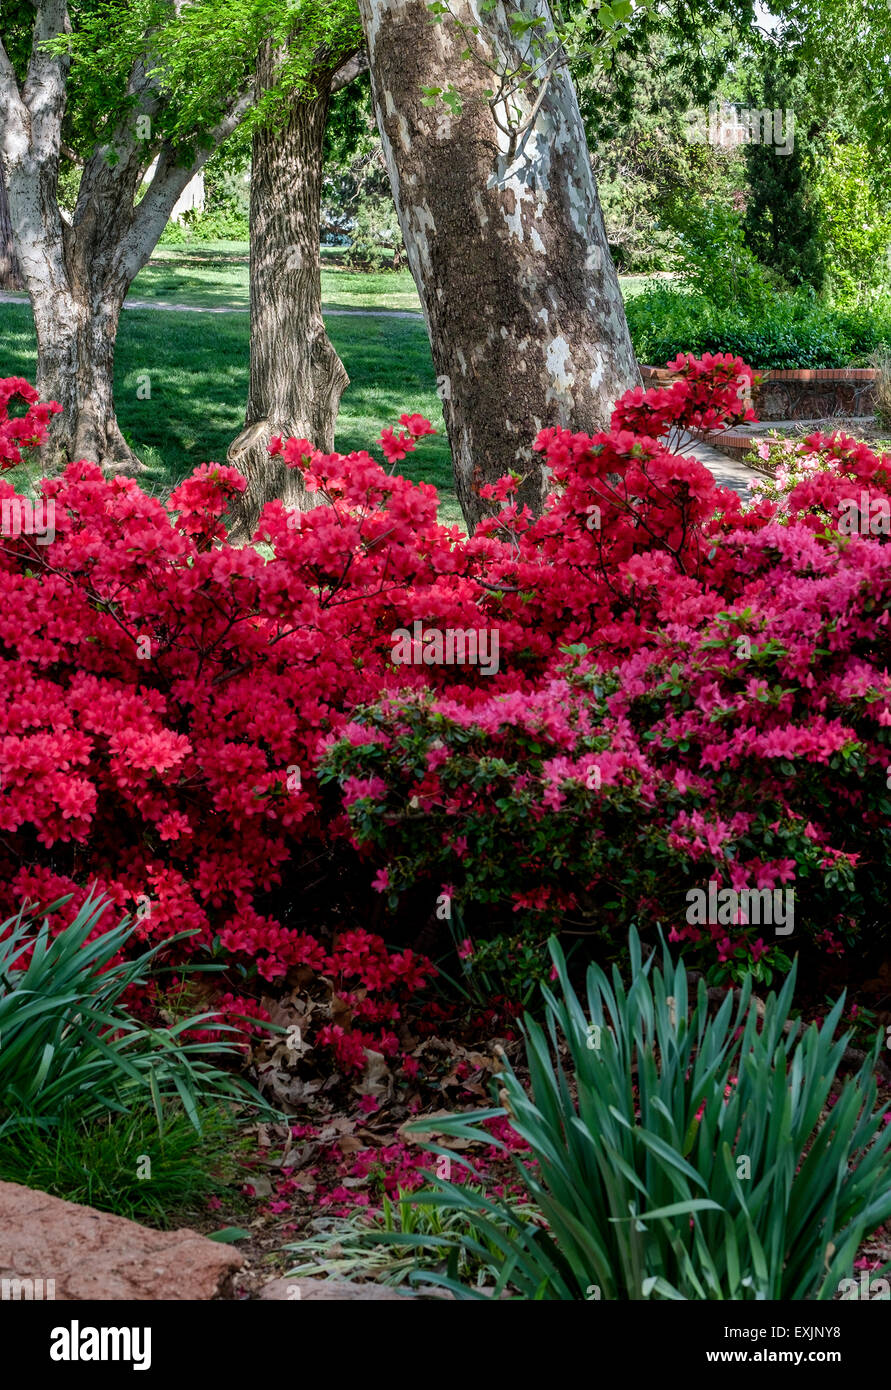 An American Sycamore tree shows its unusual bark pattern behind springtime blooming Azaleas in a public park in - Stock Image